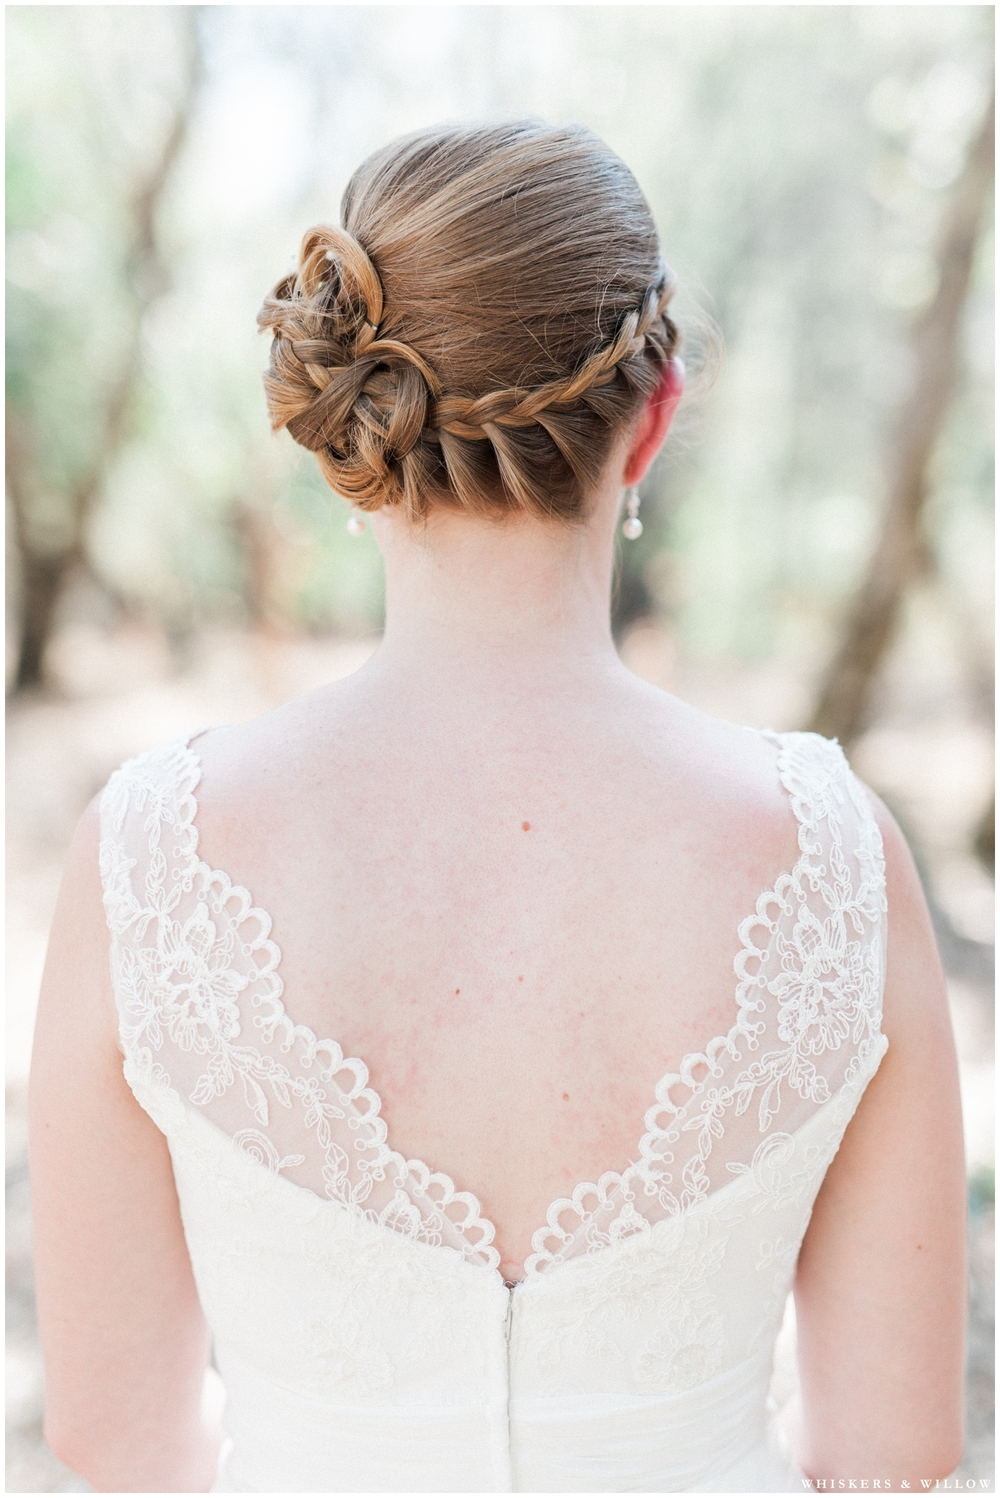 Classic Bride - Lace gown - Braided updo - San Diego Wedding Photography - Whiskers and Willow Photography